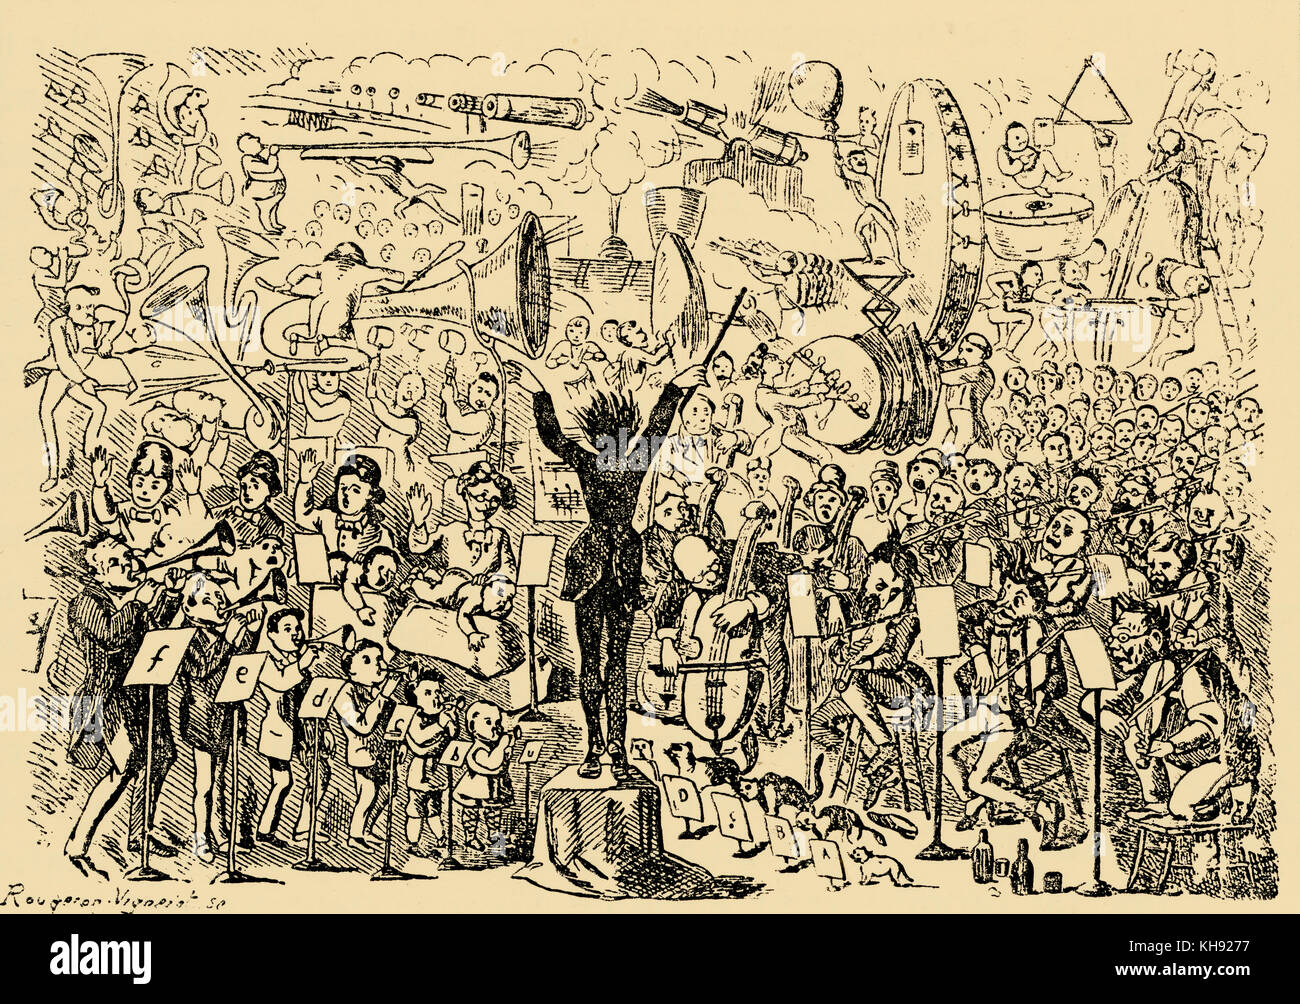 Richard Wagner: Music of the Future.  Swiss caricature on Wagner's essay of 1860s.  Suggesting that Wagner's - Stock Image